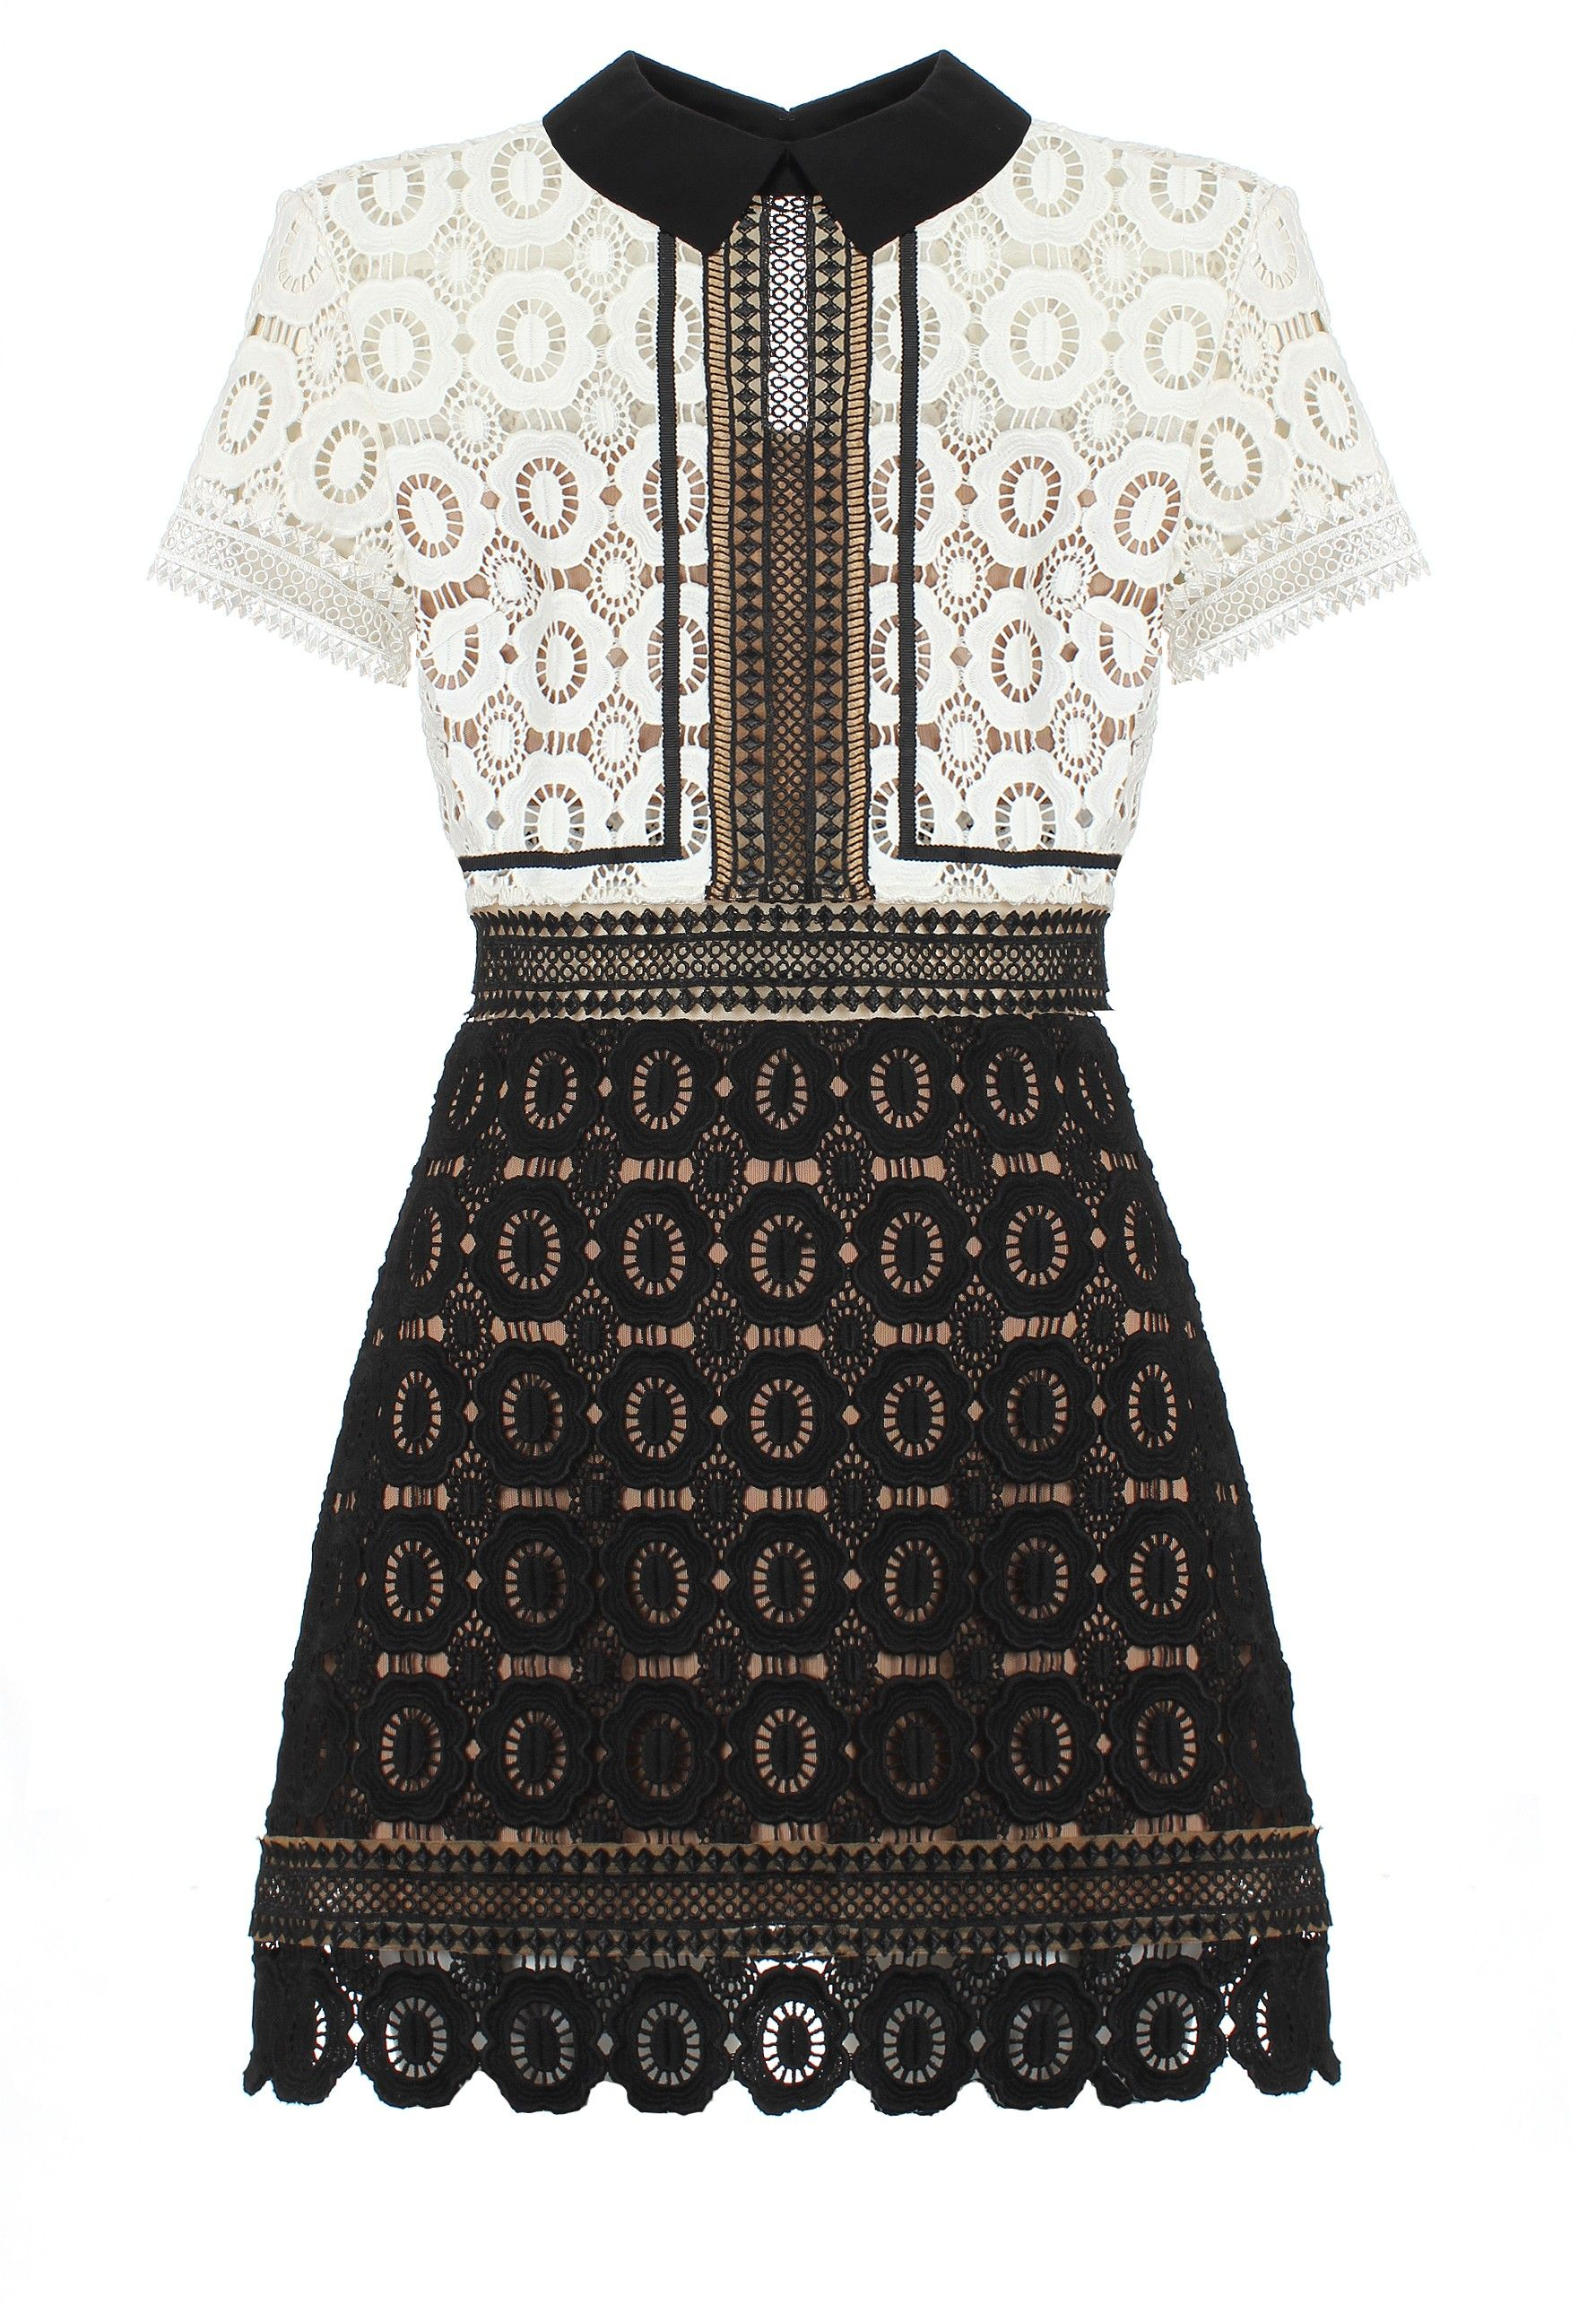 b1ca3531f8ed Self-Portrait Felicia Lace Mix Dress in black/off-white. With exquisitely